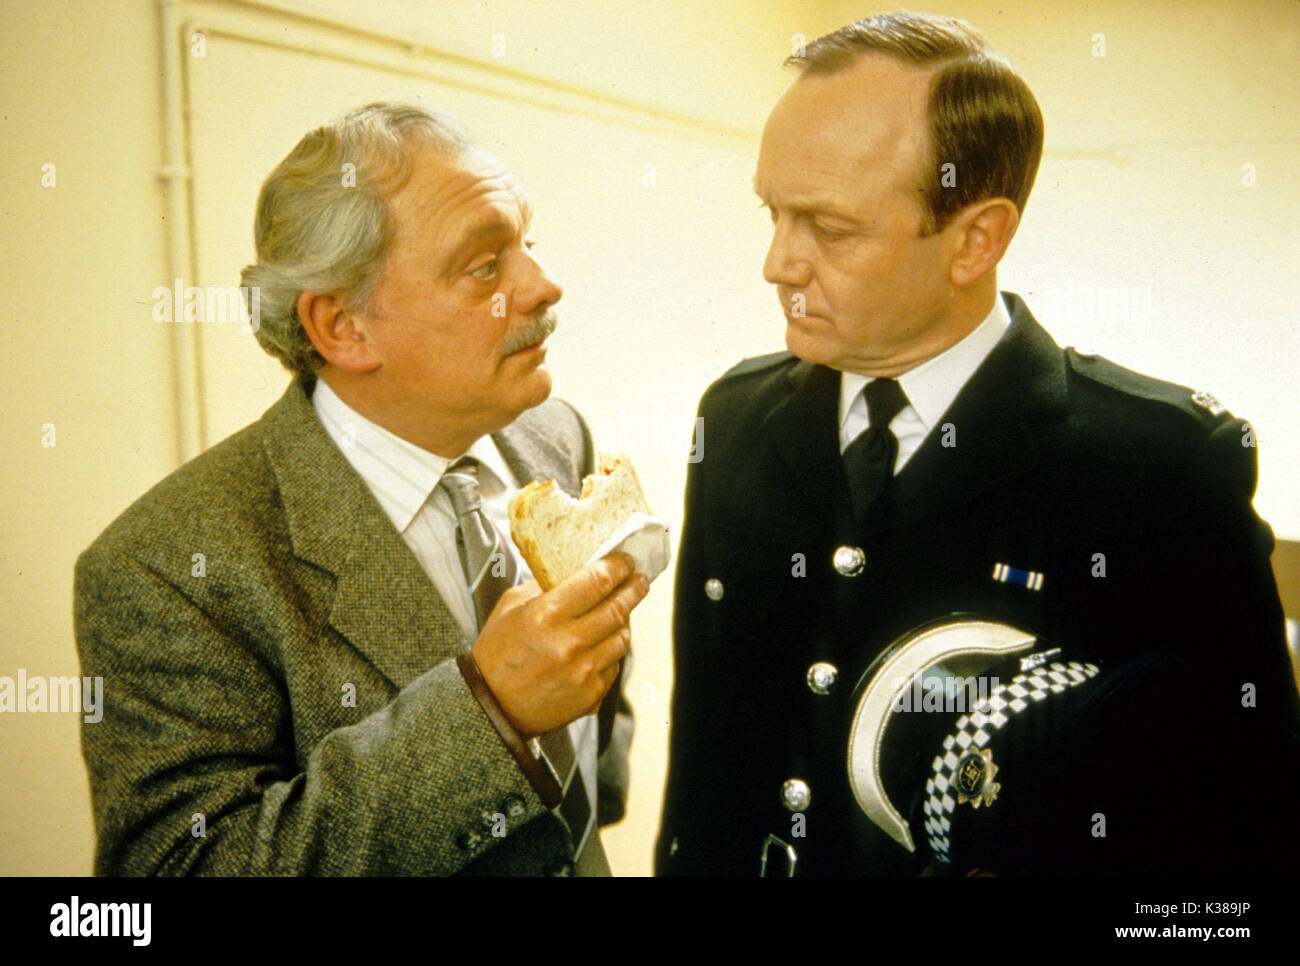 TOUCH OF FROST YORKSHIRE TELEVISION DAVID JASON, BRUCE ALEXANDER - Stock Image